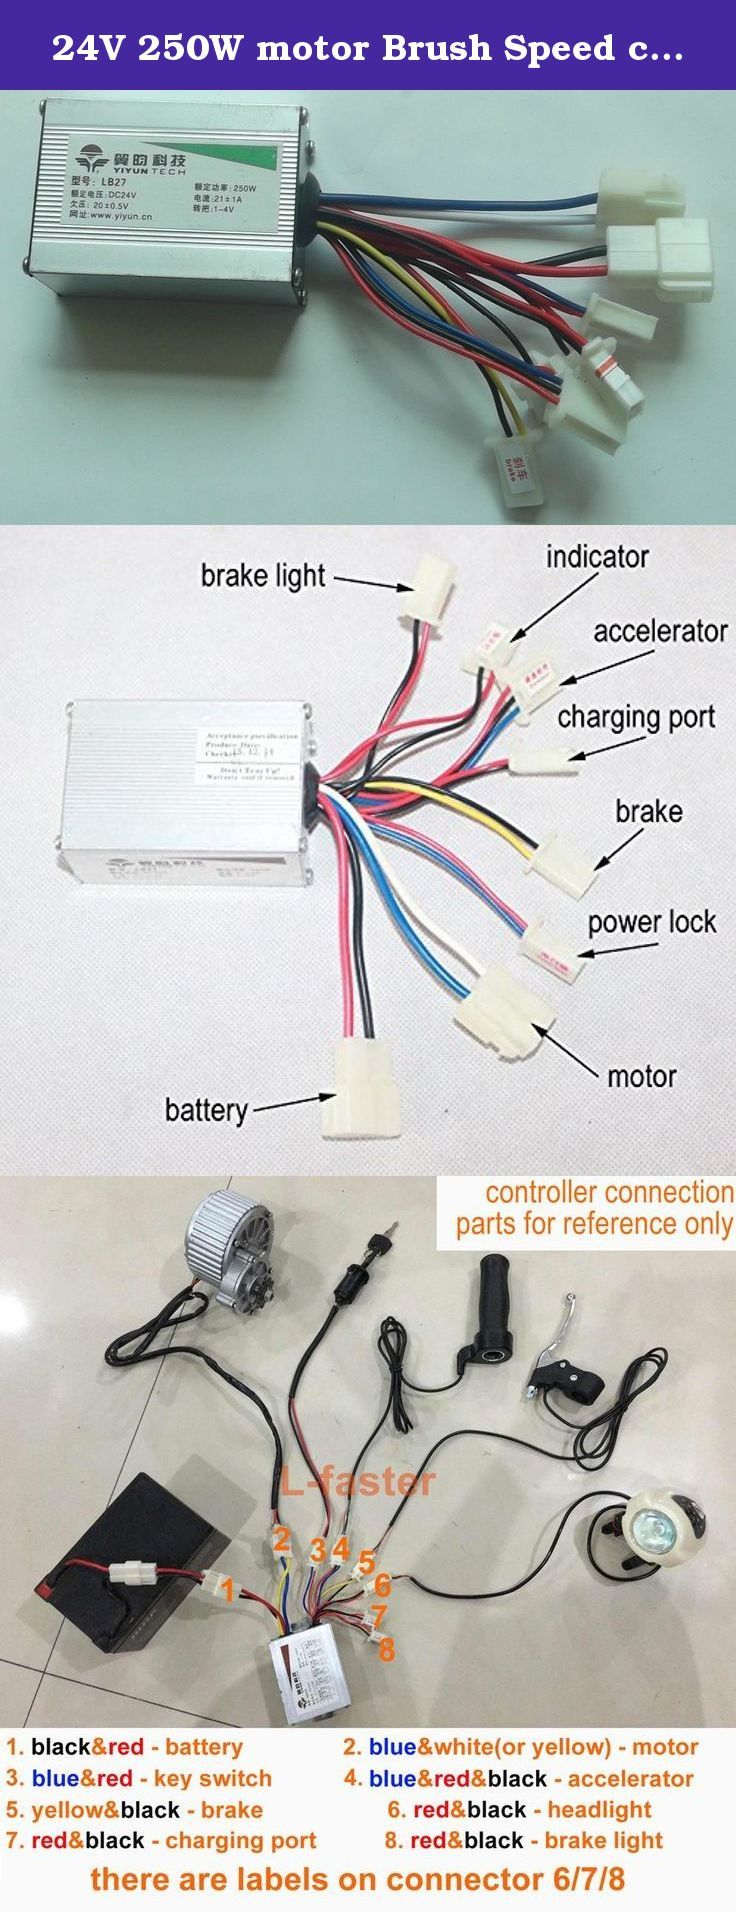 24v 250w motor brush speed controller for electric bike. Black Bedroom Furniture Sets. Home Design Ideas